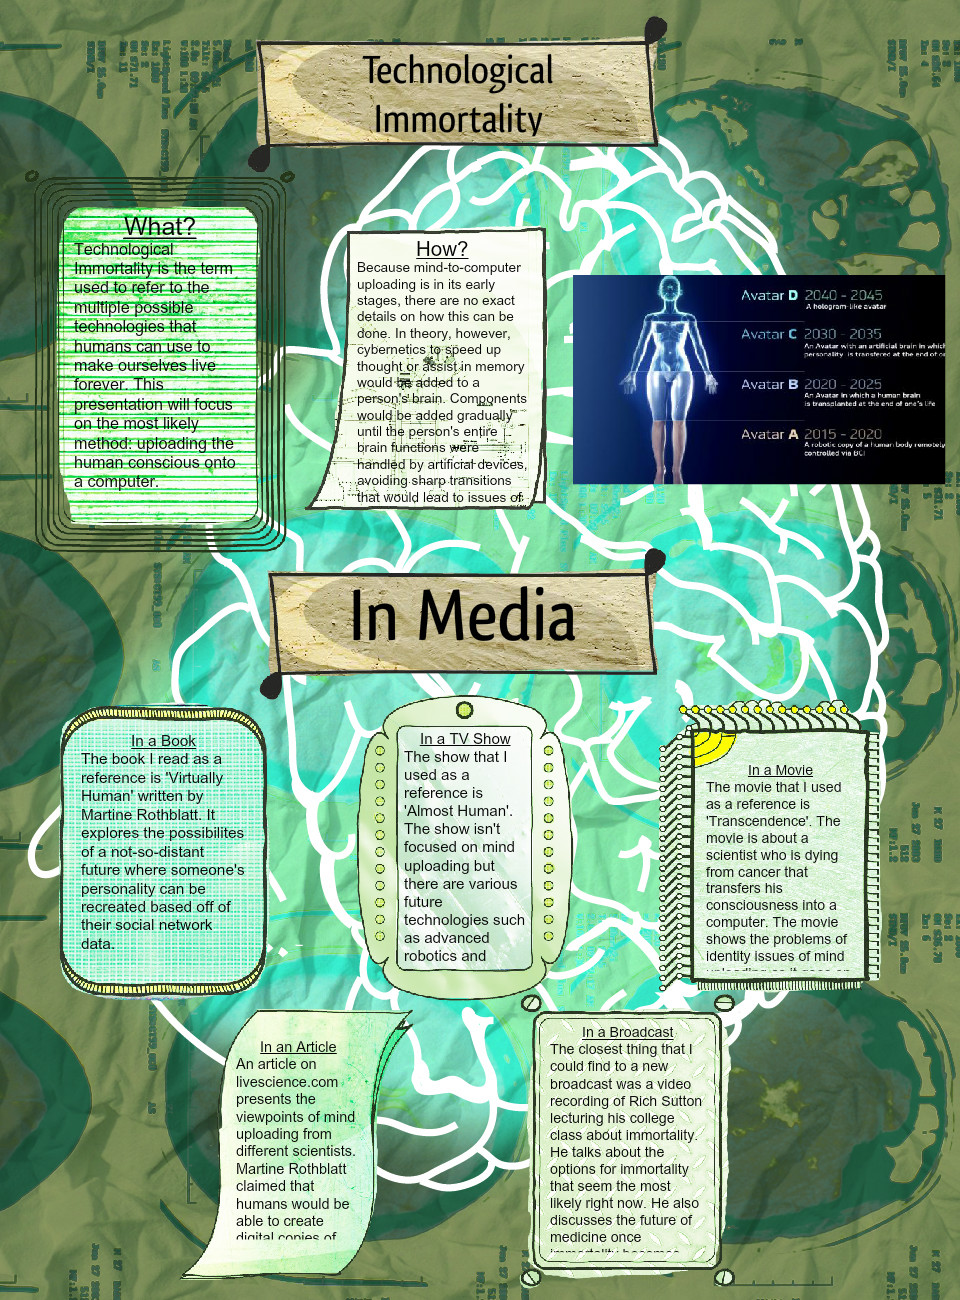 Science in Media - Technological Immortality